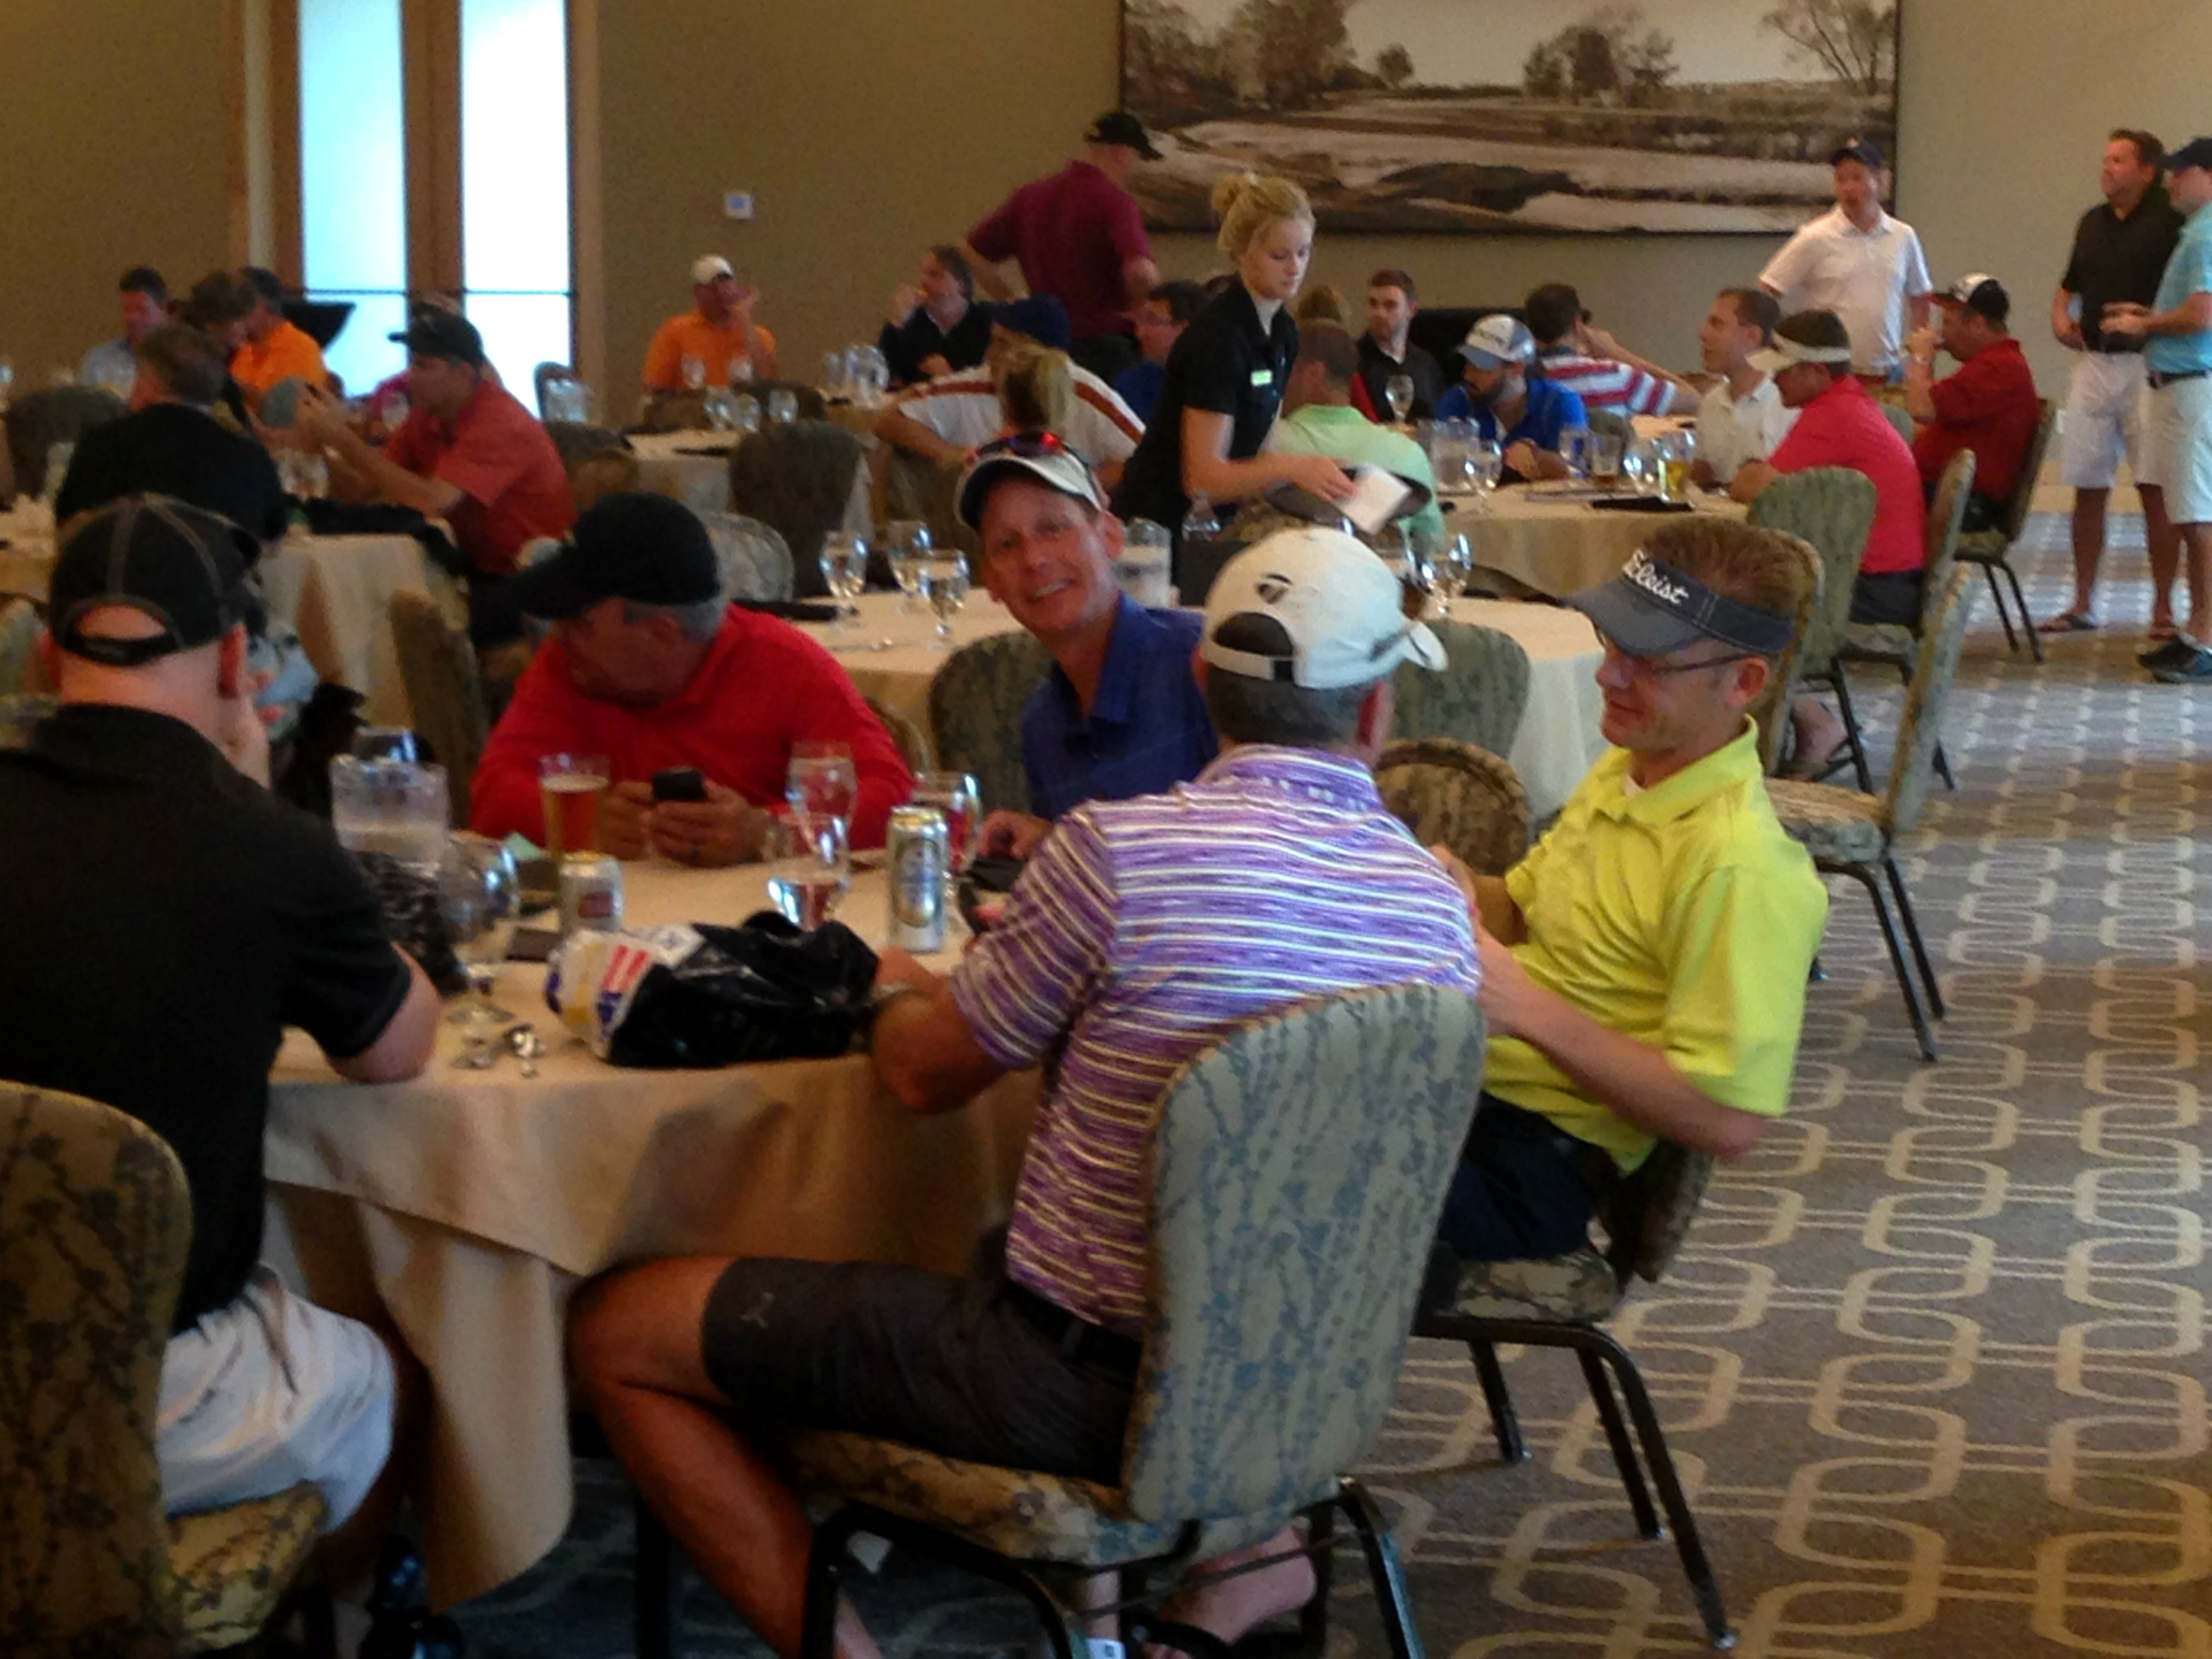 Golfers enjoy dinner after competing in a private golf tournament at Hazelitne National Golf Club